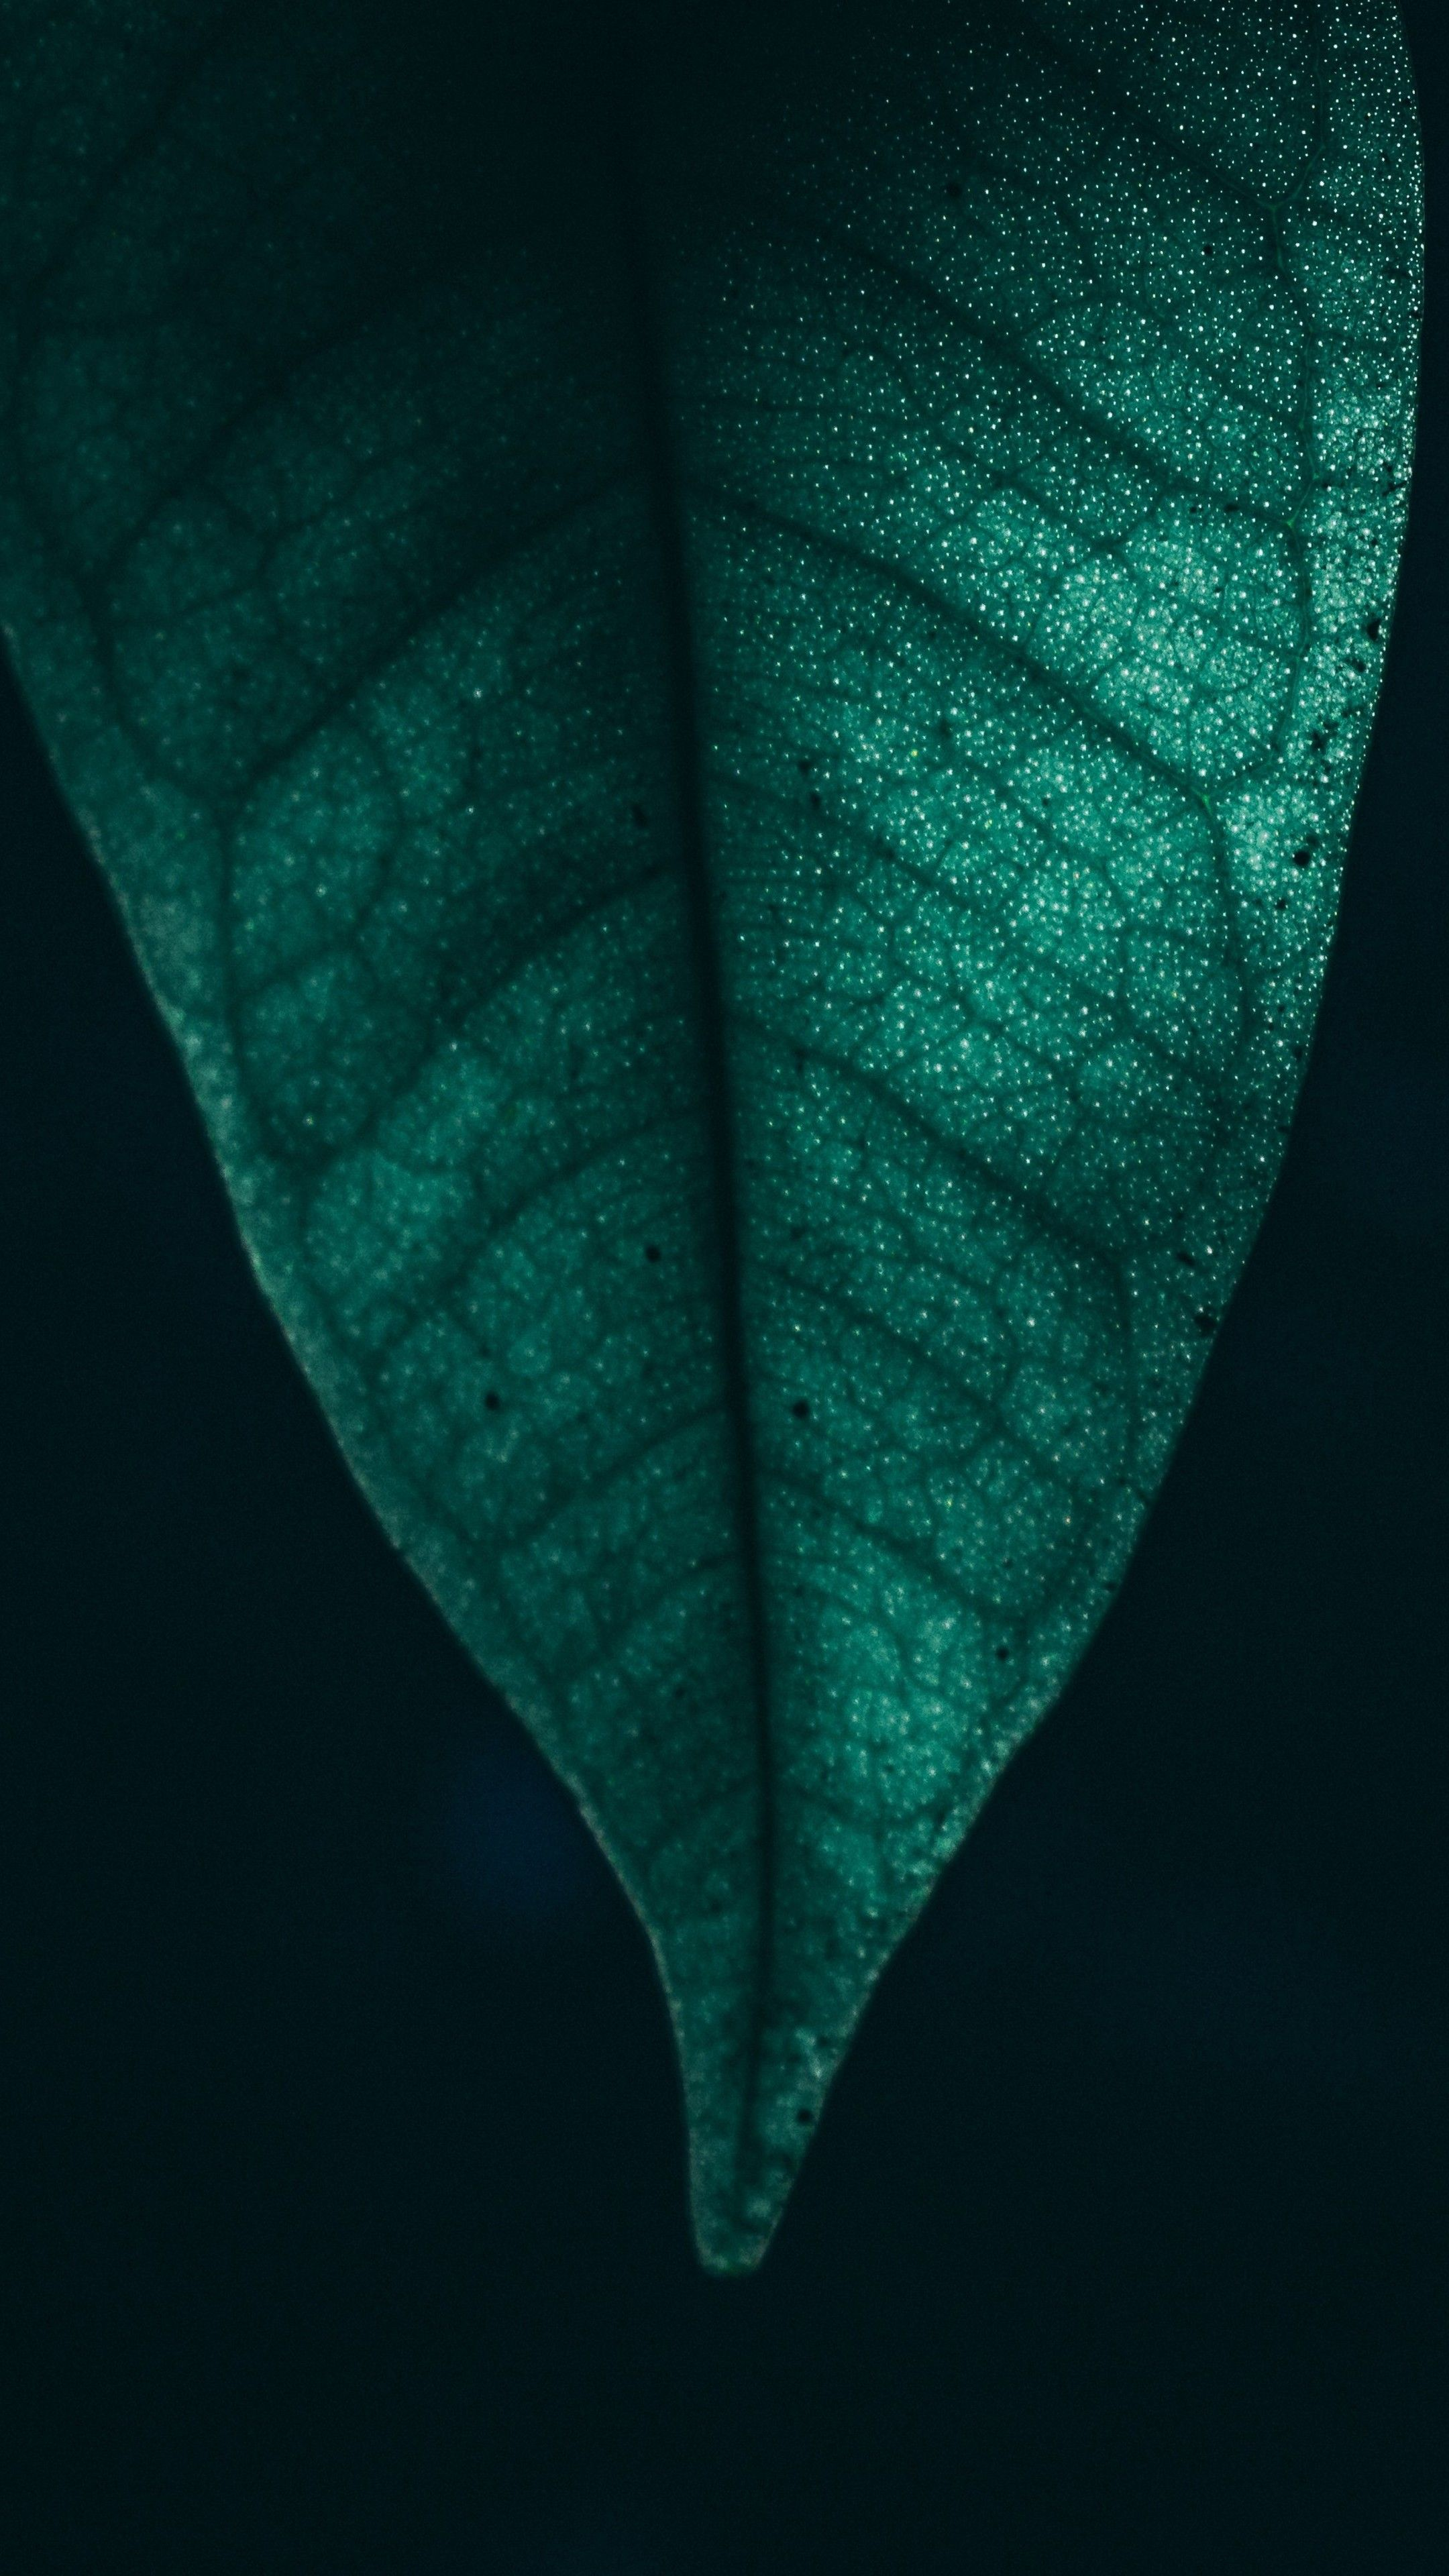 Android Wallpaper - Green Wallpaper 4k For Android , HD Wallpaper & Backgrounds